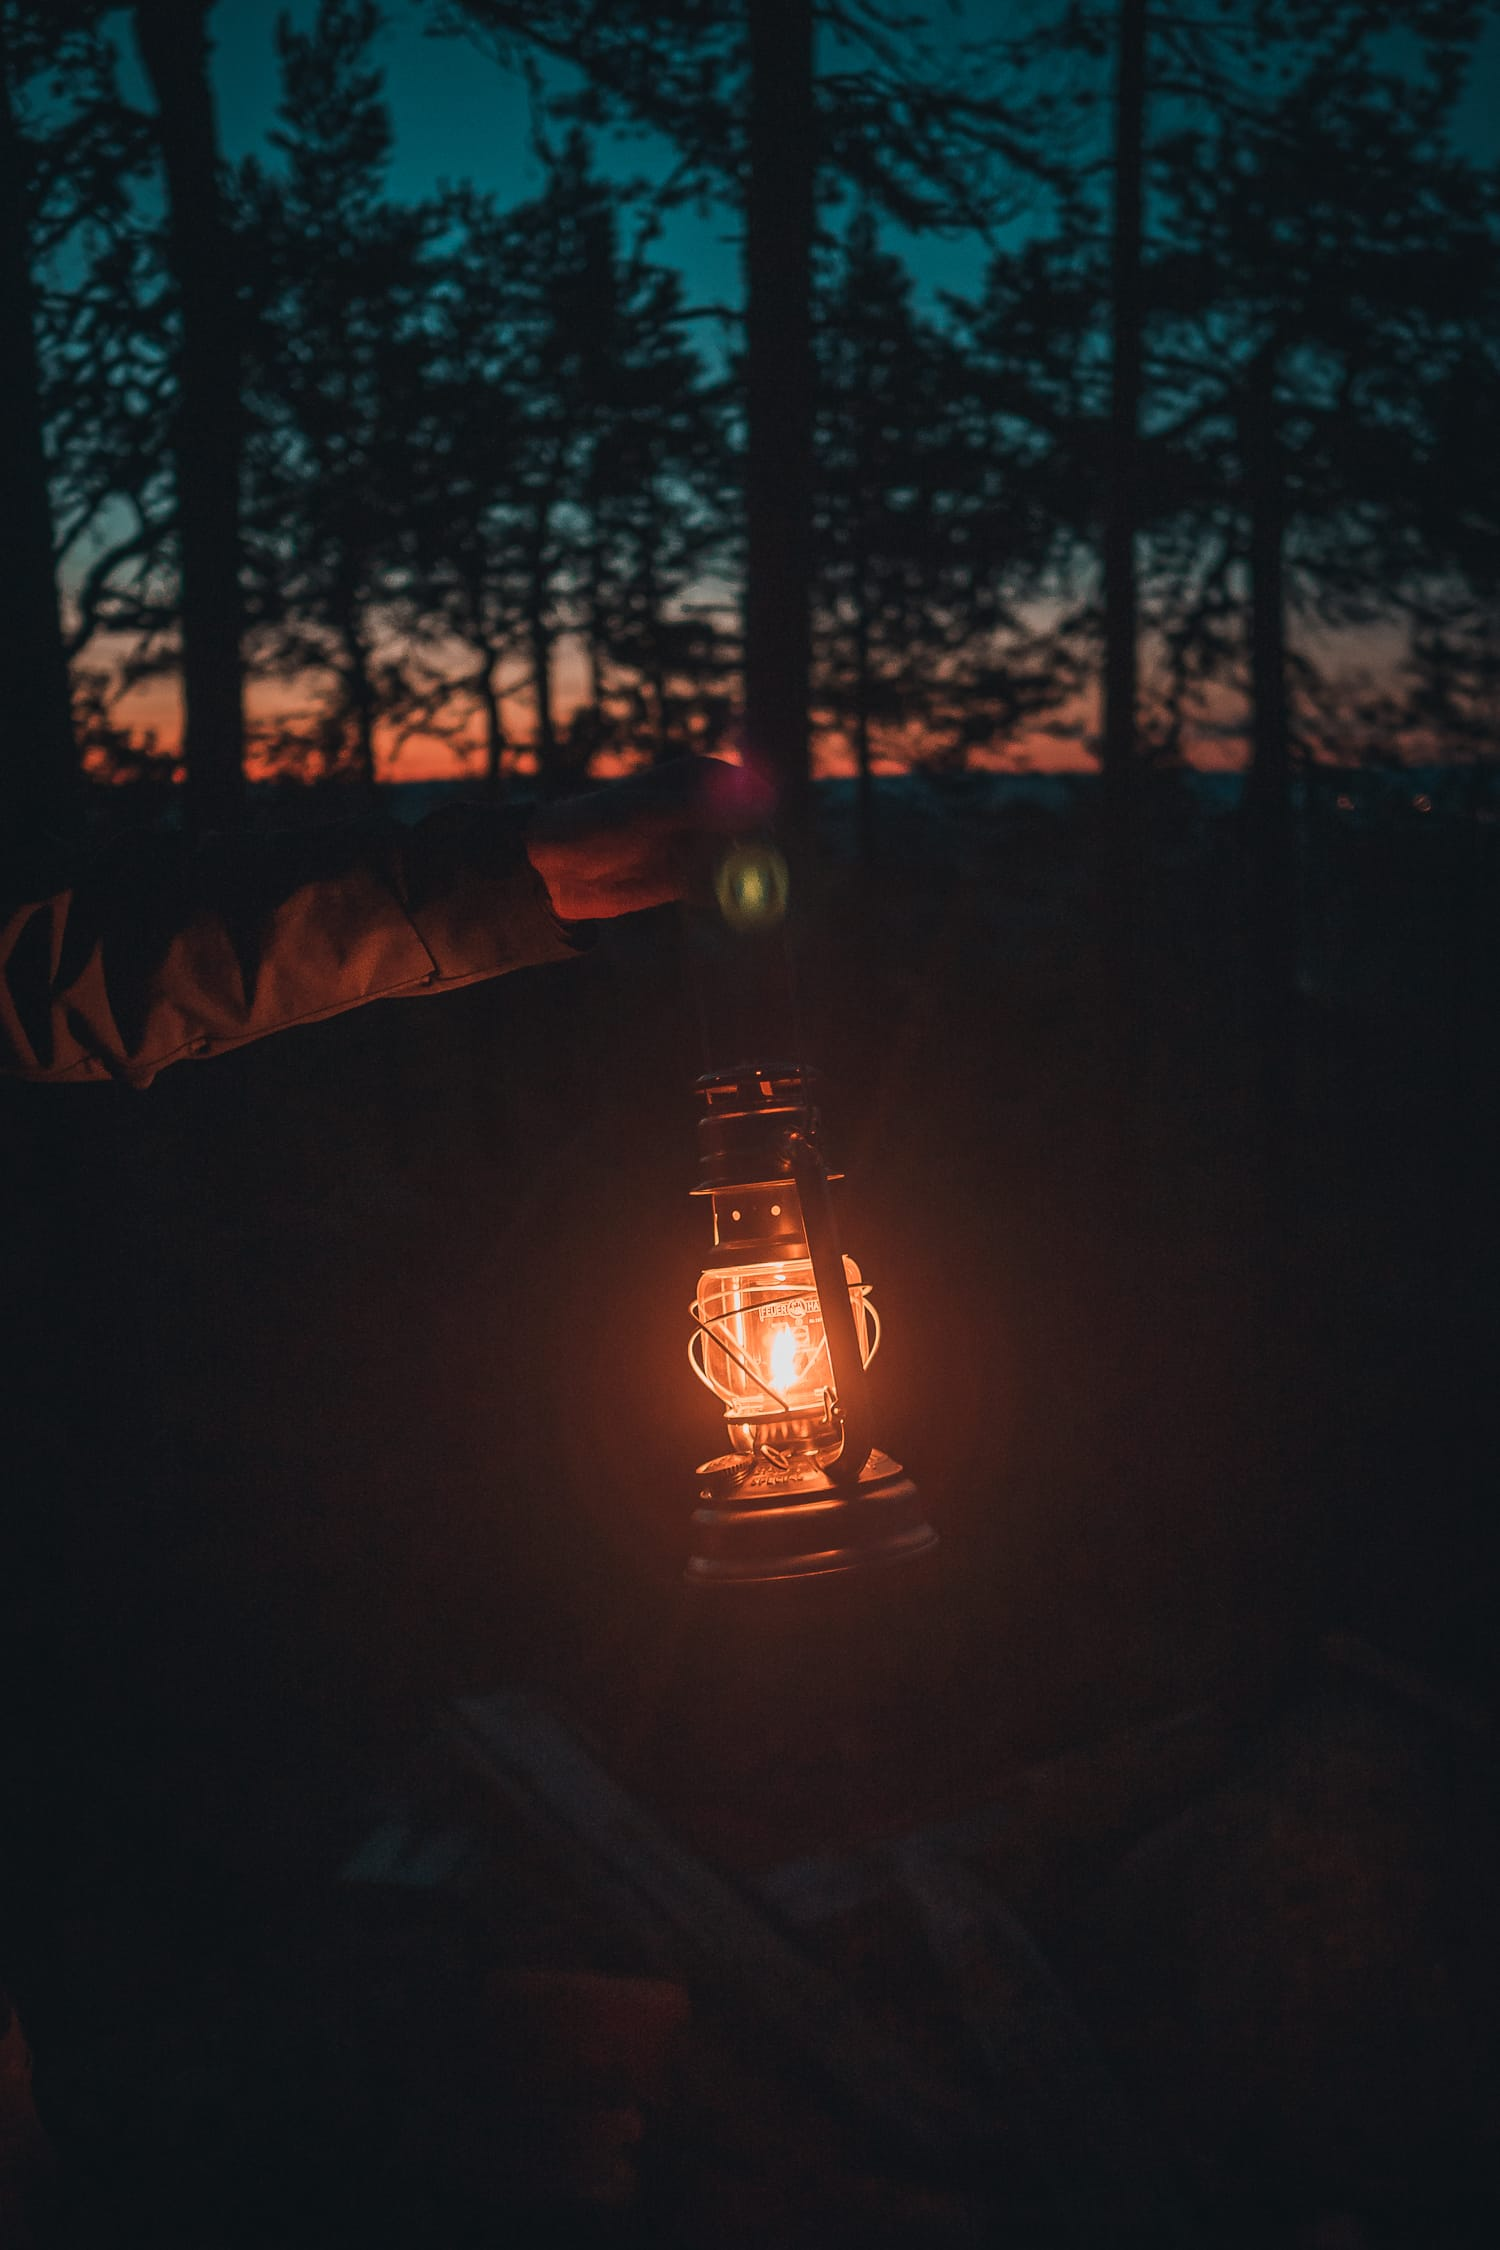 hand holding a lantern in the dark